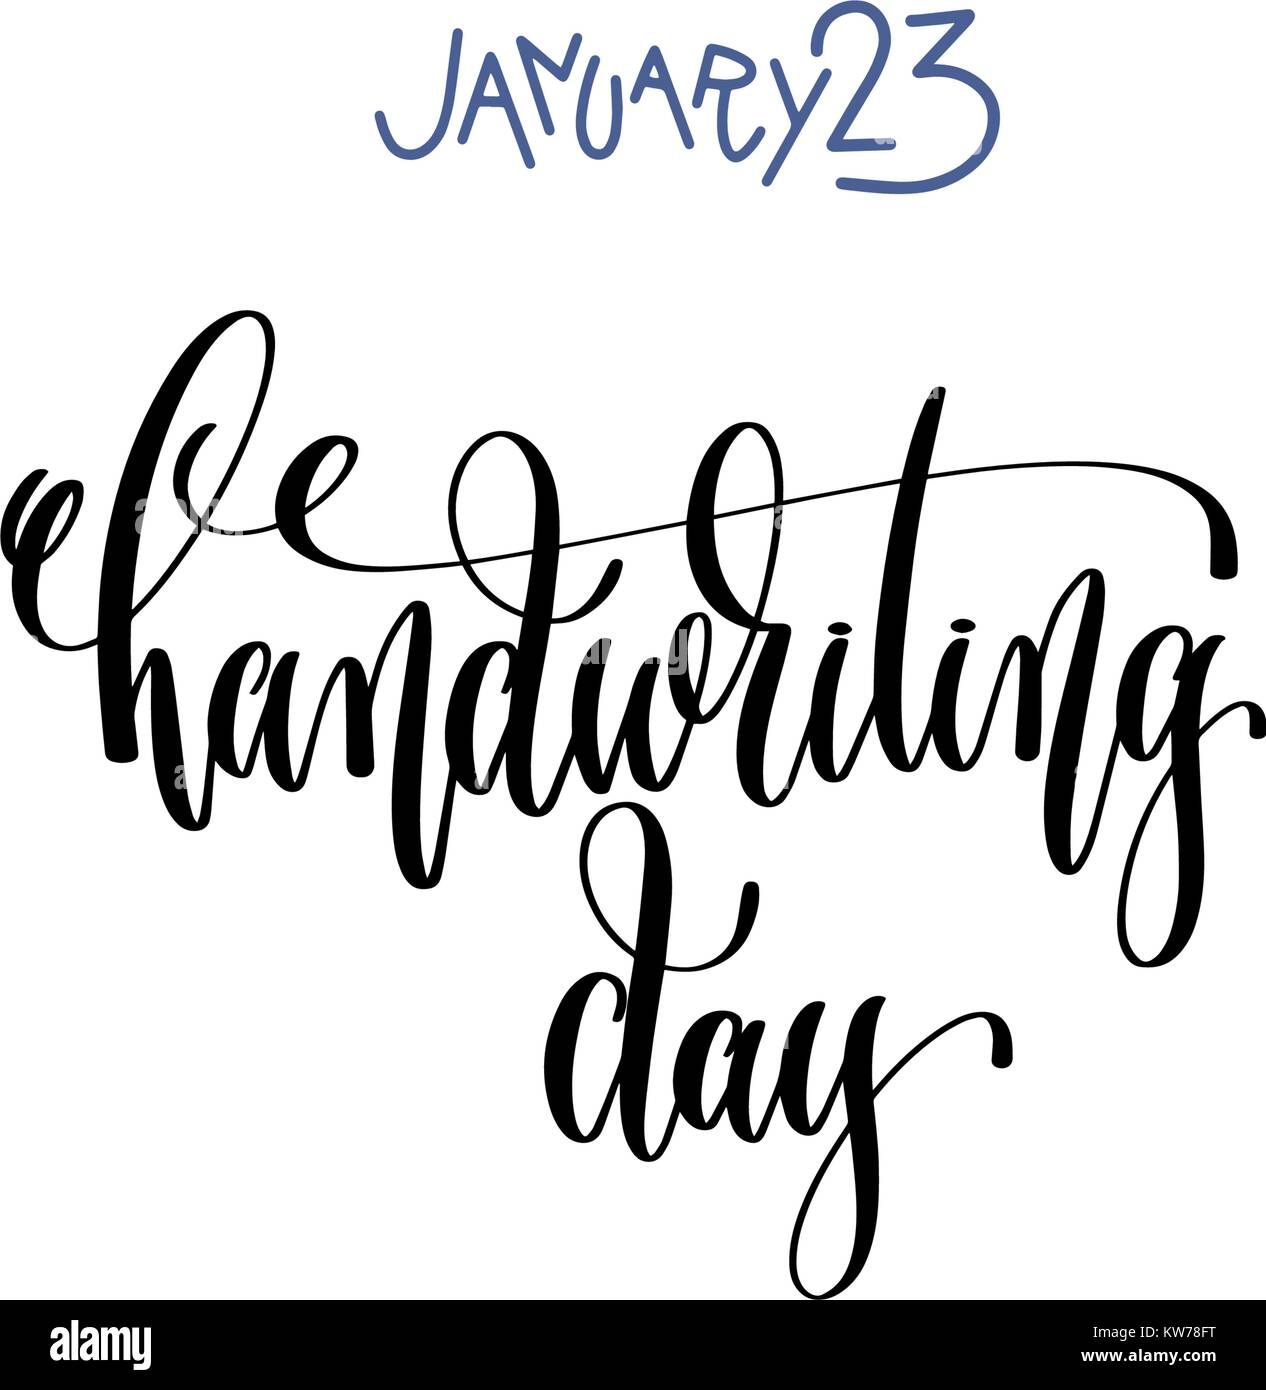 january 23 - handwriting day - hand lettering inscription text - Stock Vector